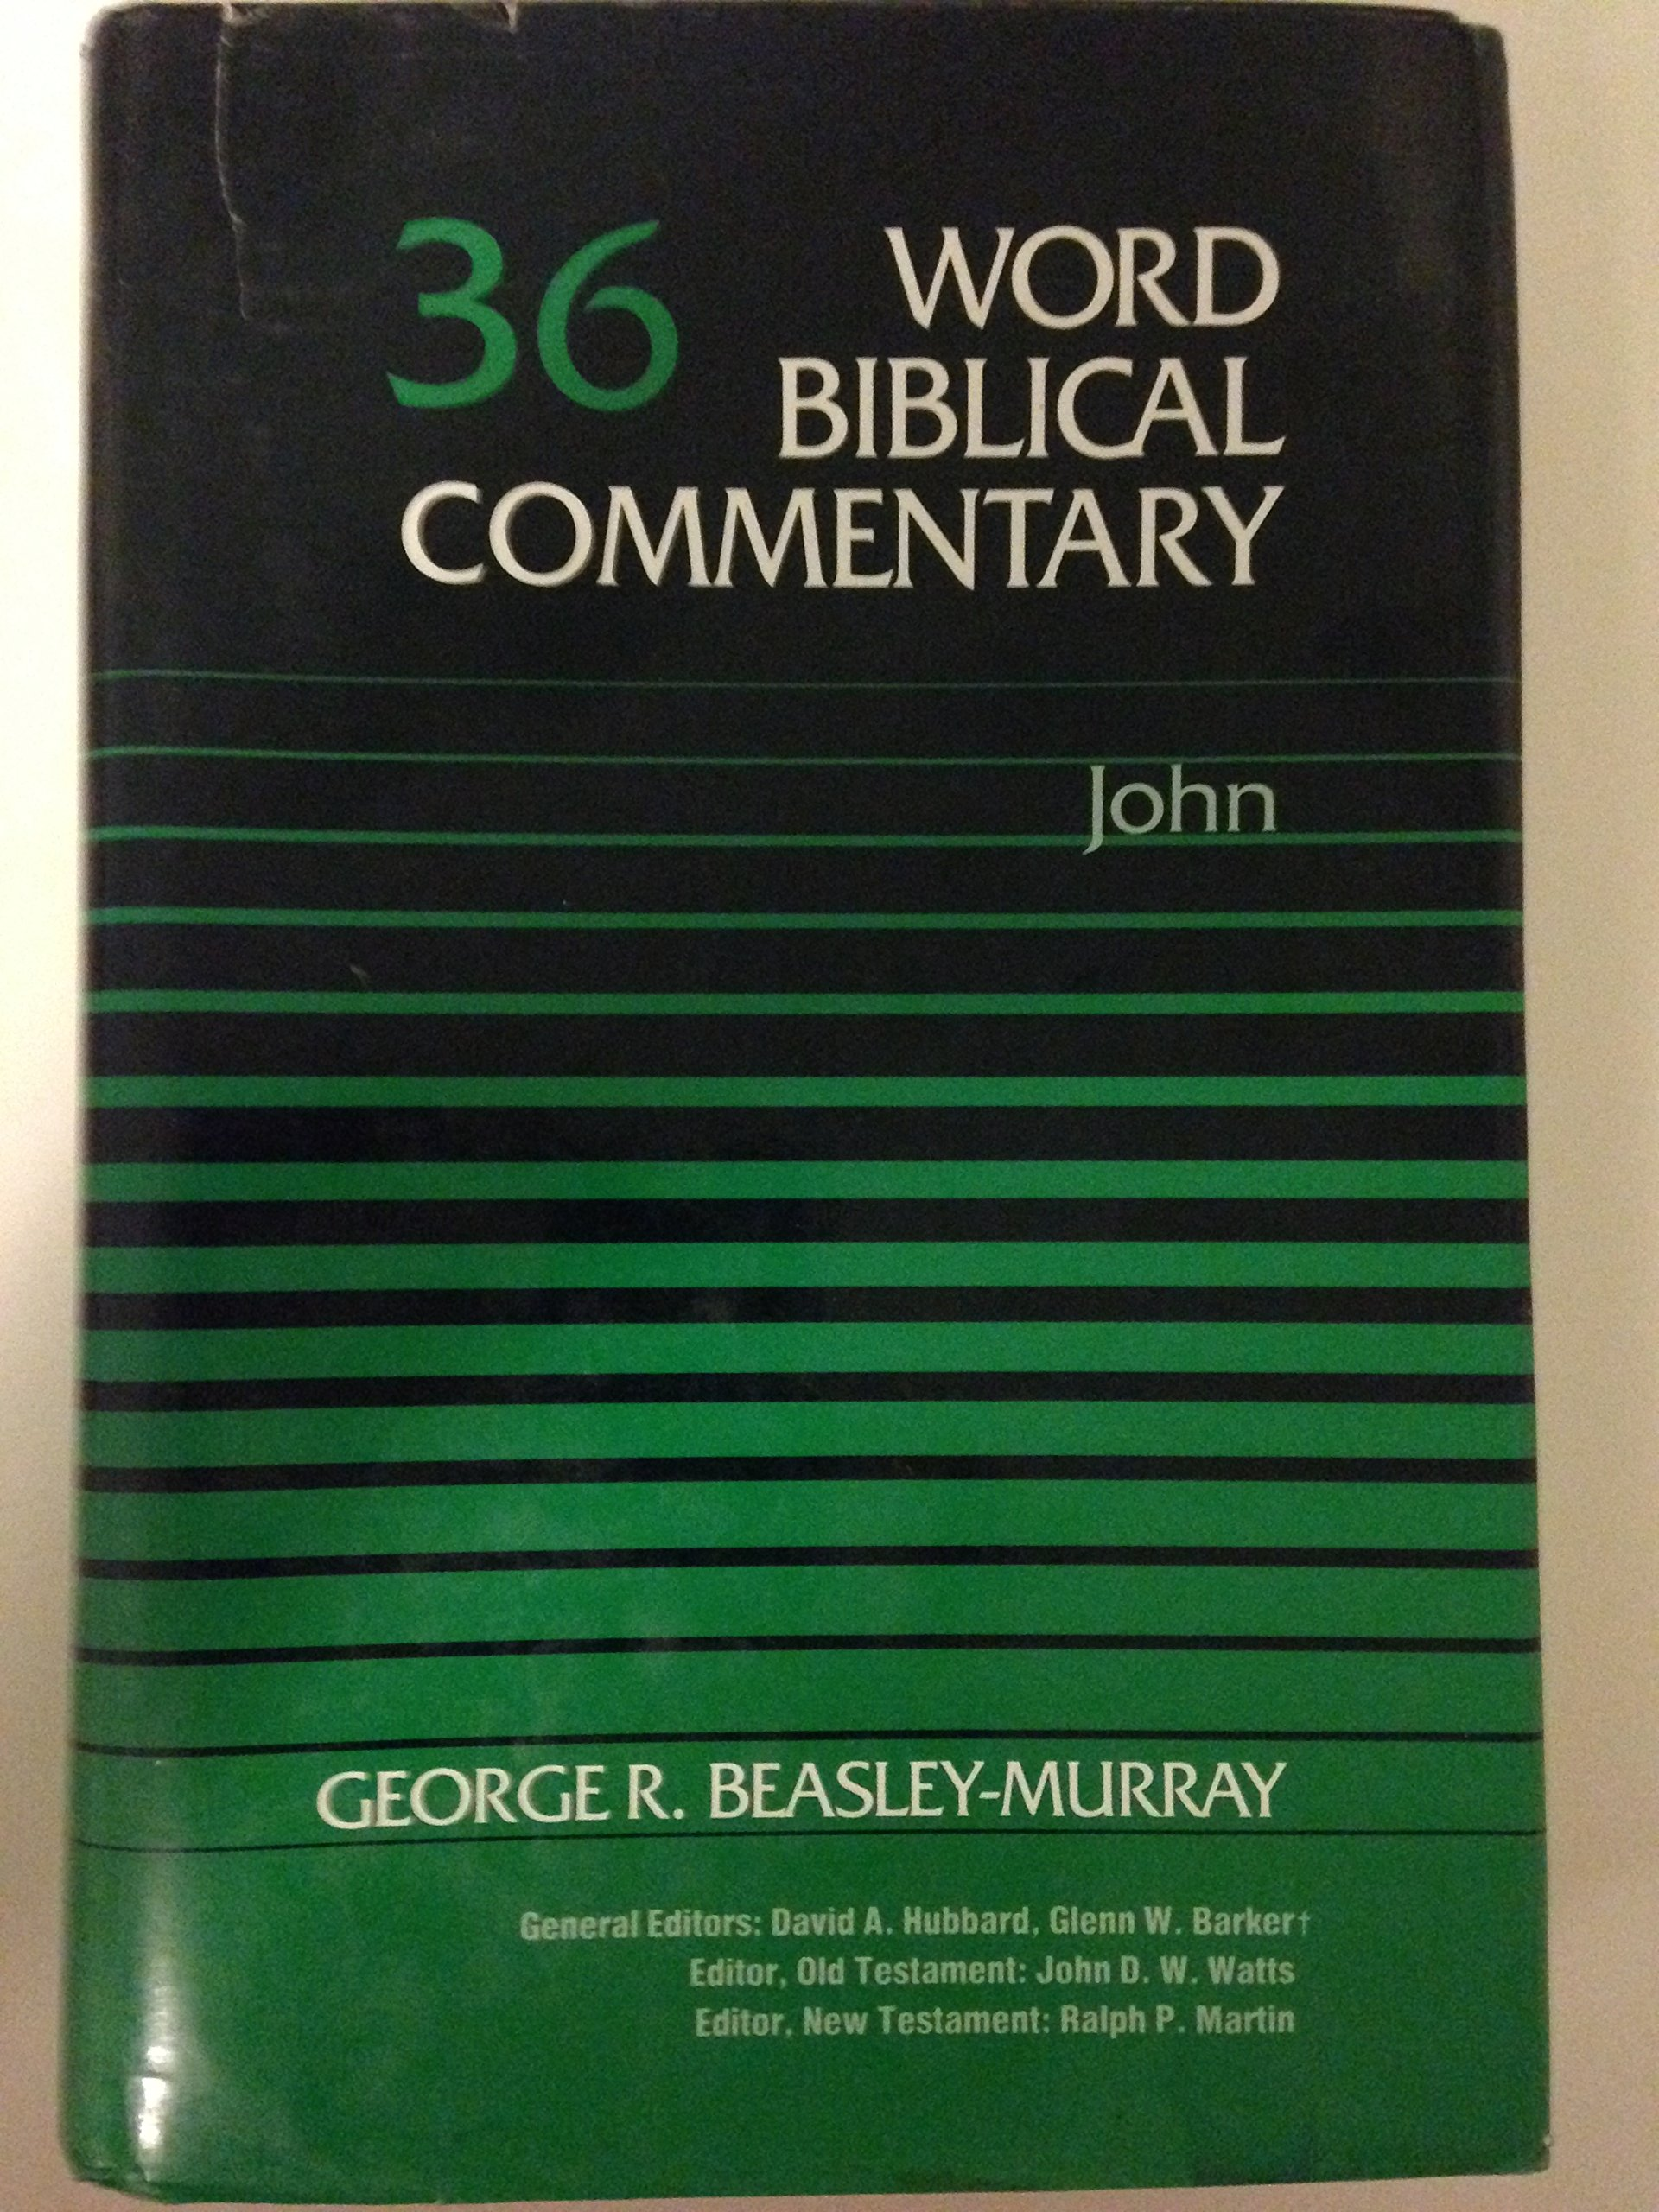 John (Word Biblical Commentary, Vol. 36): George R. Beasley-Murray:  9780849902352: Amazon.com: Books